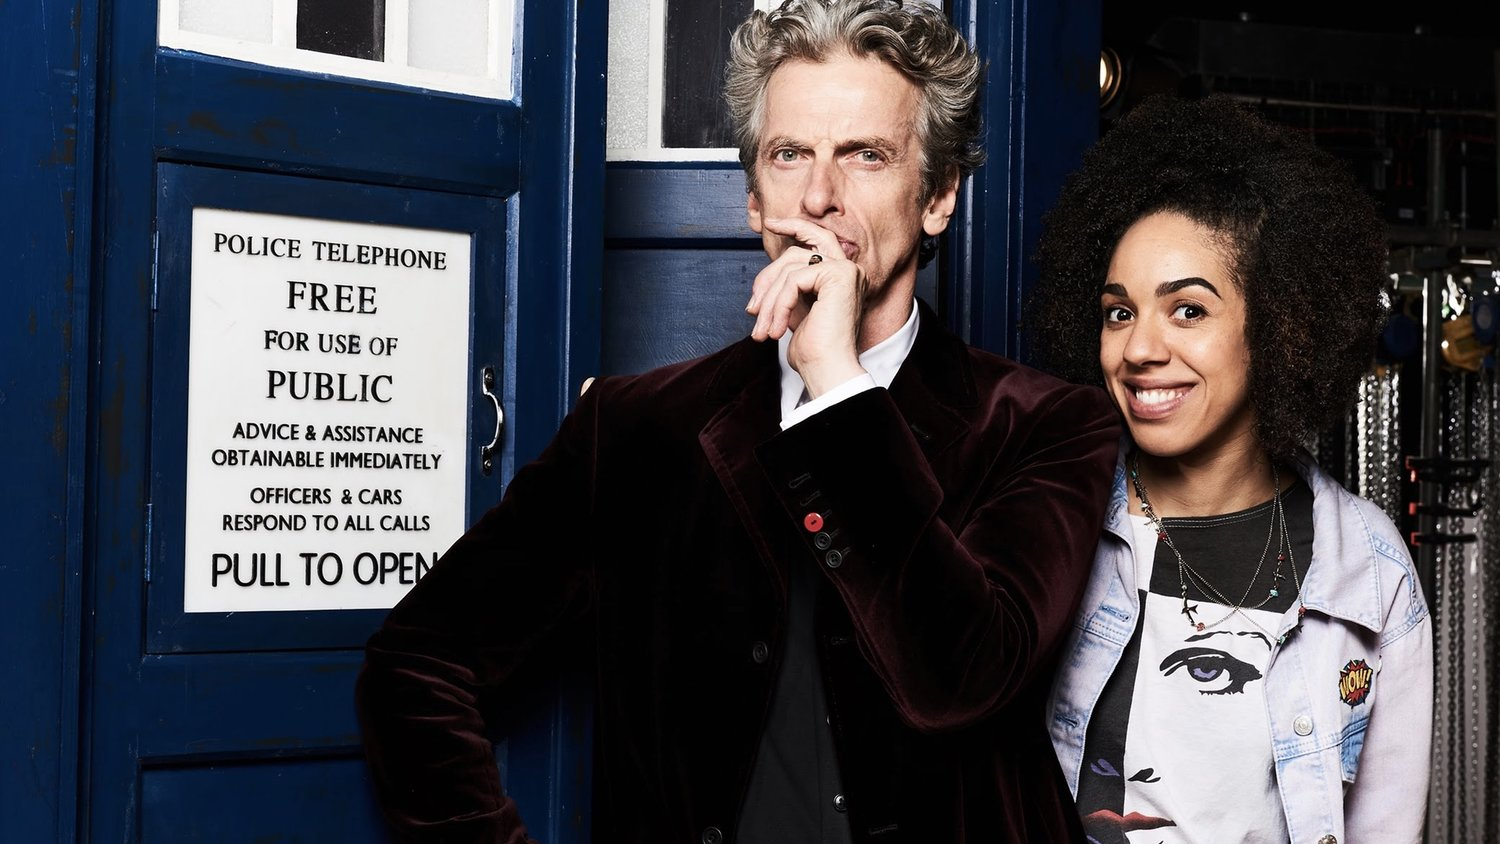 New Trailer for DOCTOR WHO Season 10